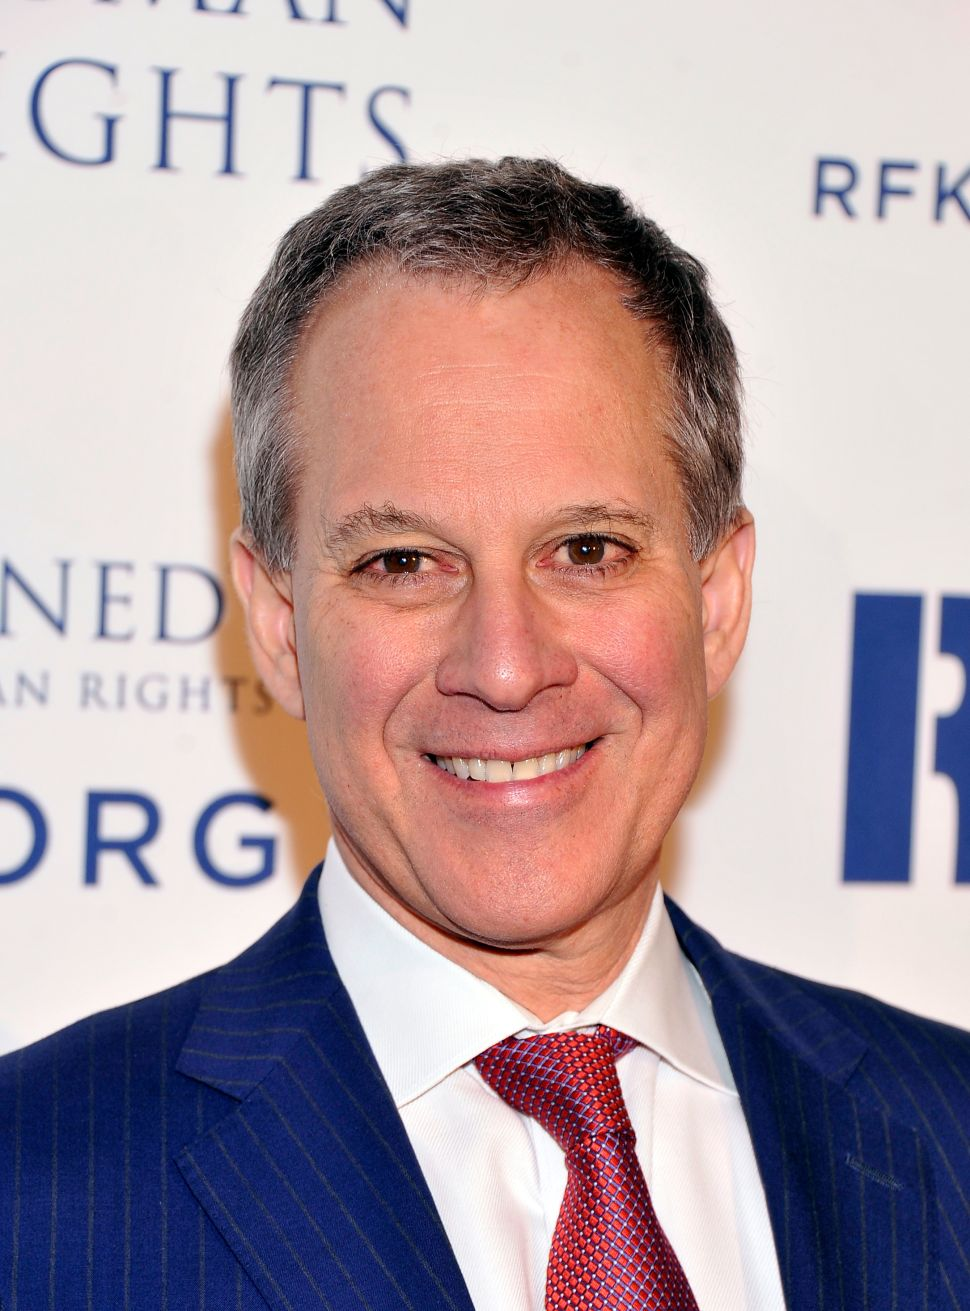 Schneiderman Says He Doesn't Wear Eyeliner, Not That There's Anything Wrong With That